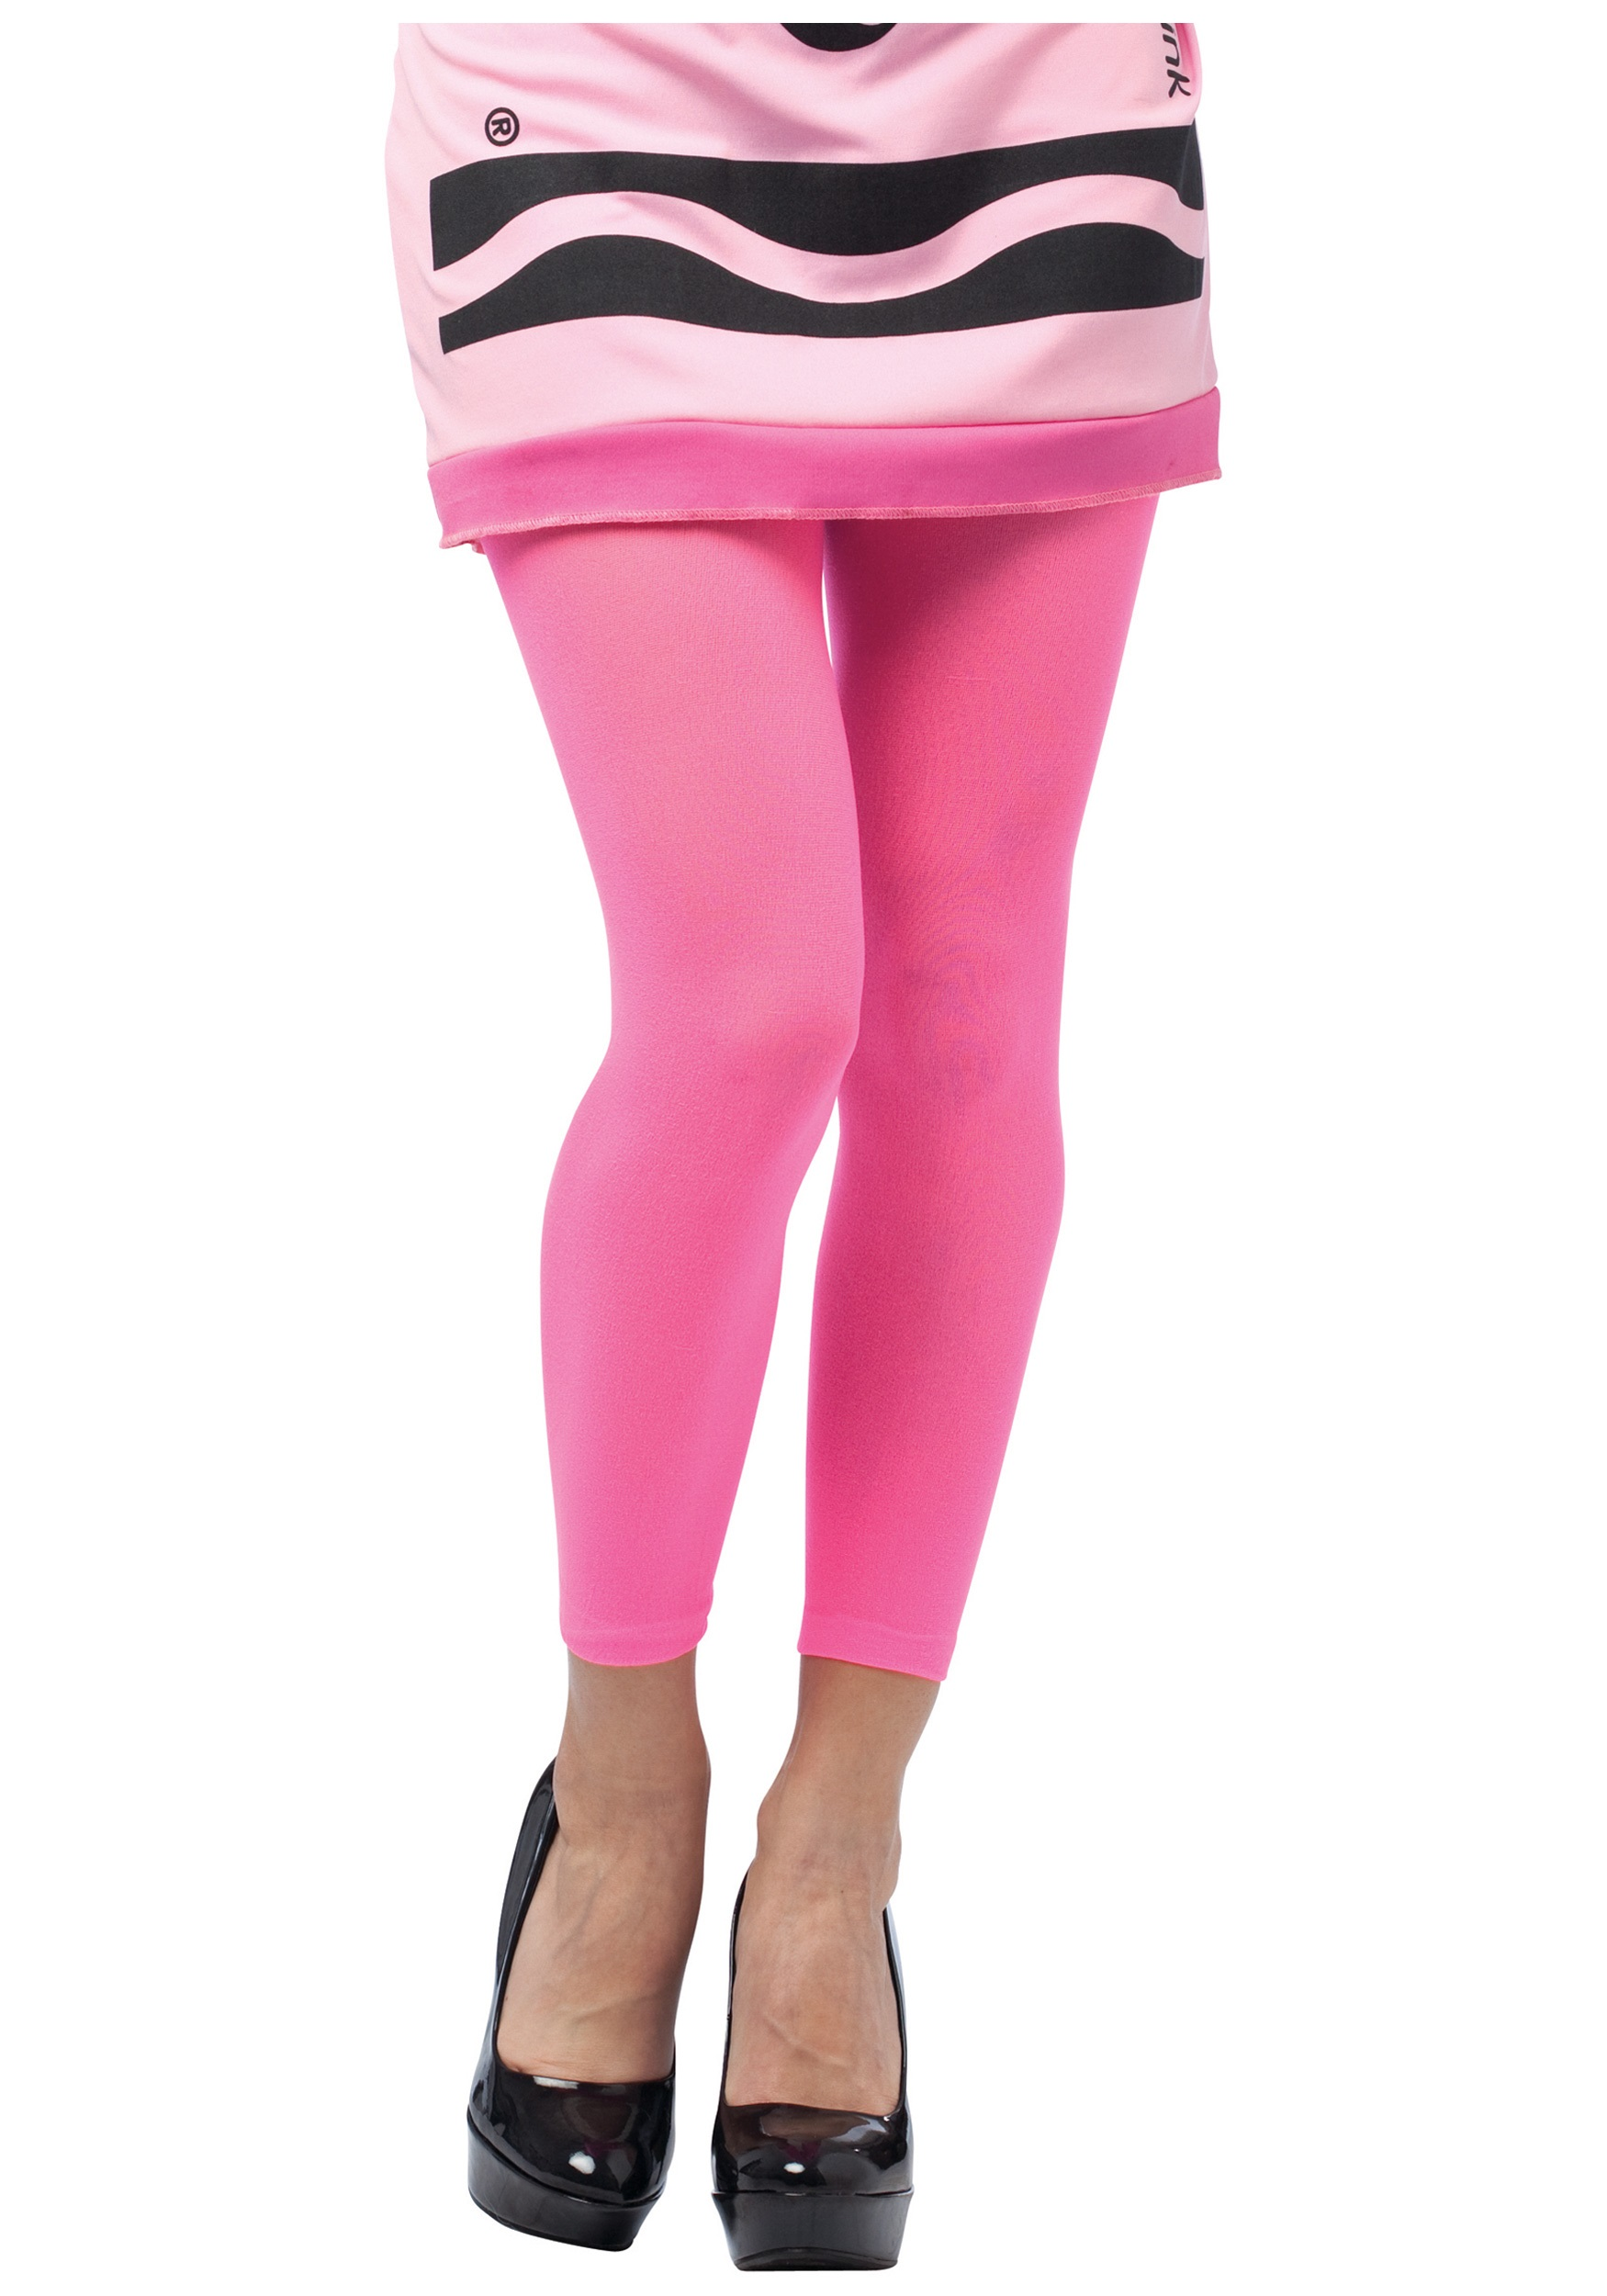 Tickle Me Pink Crayon Footless Tights